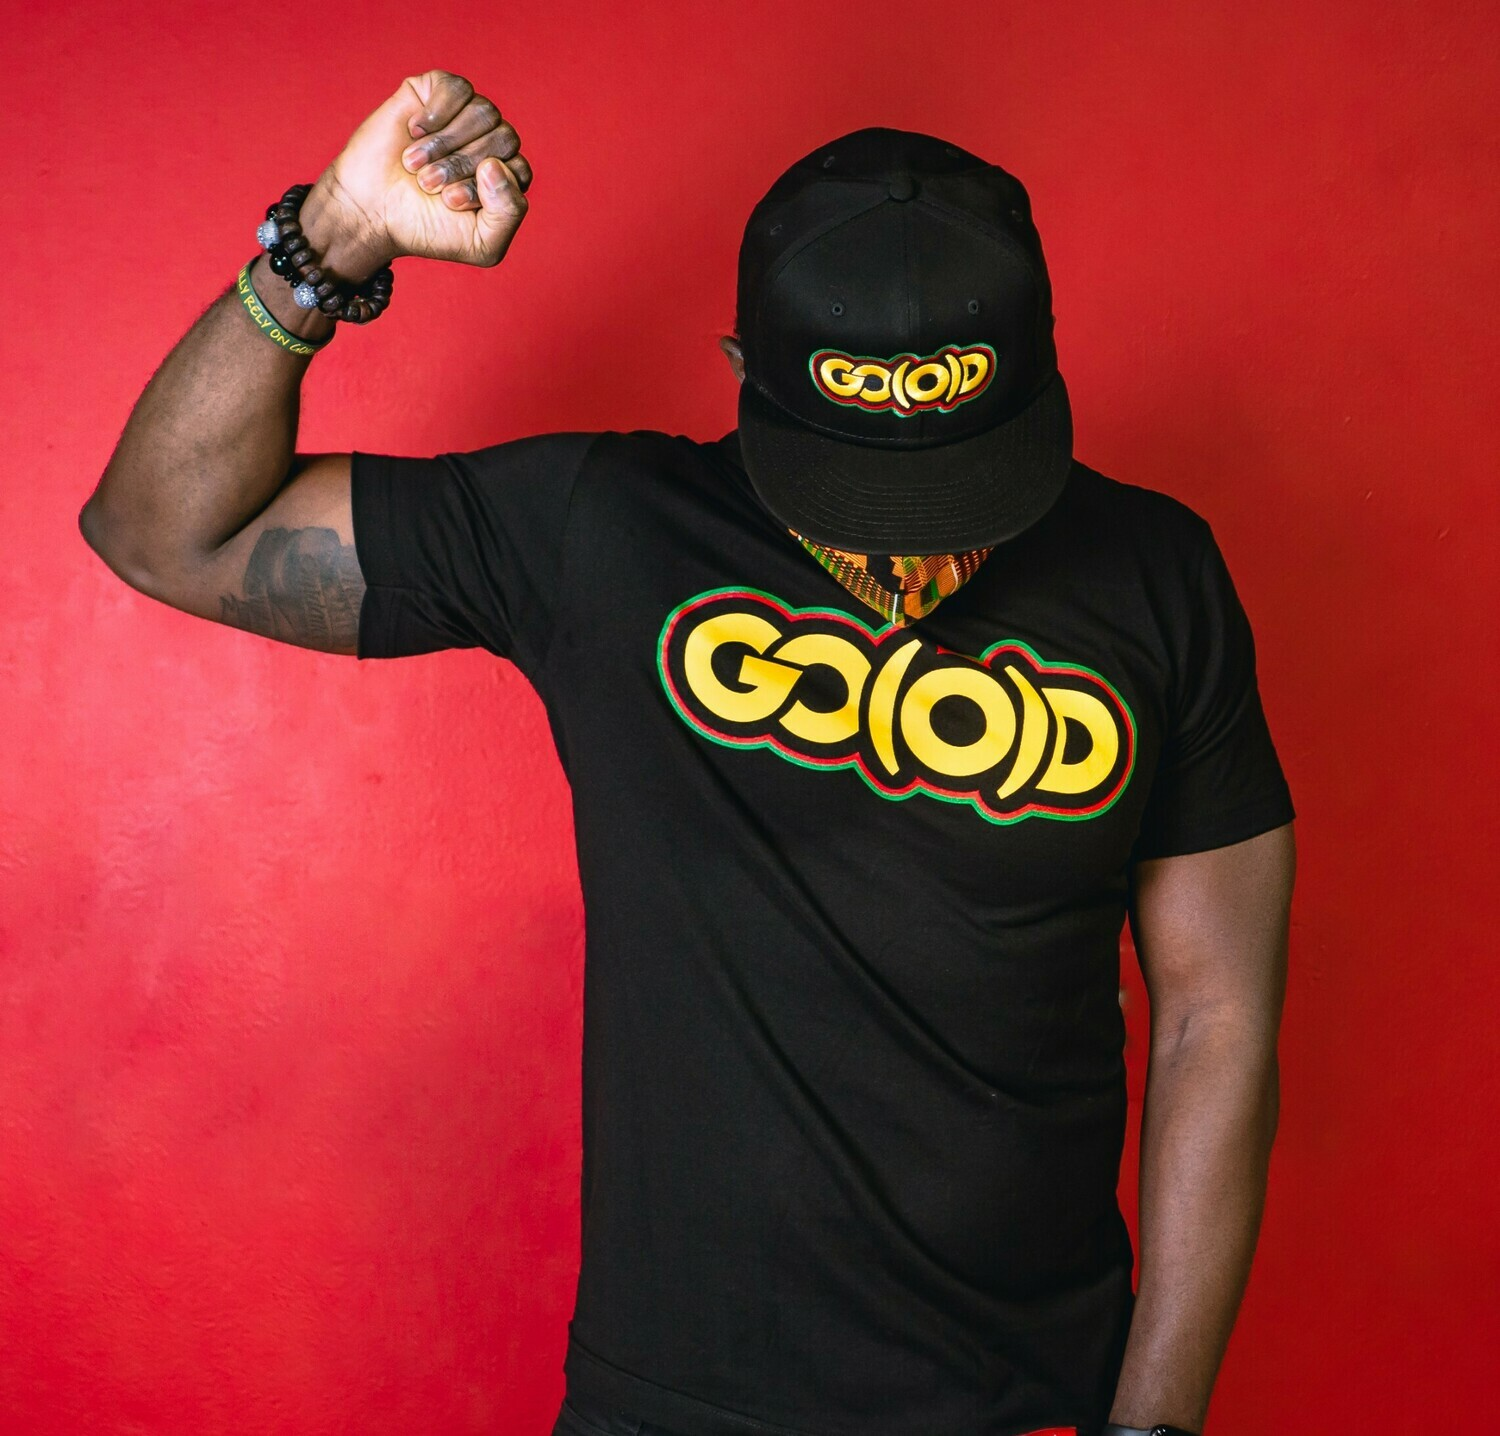 GO(O)D History tee-black/yellow/red/green